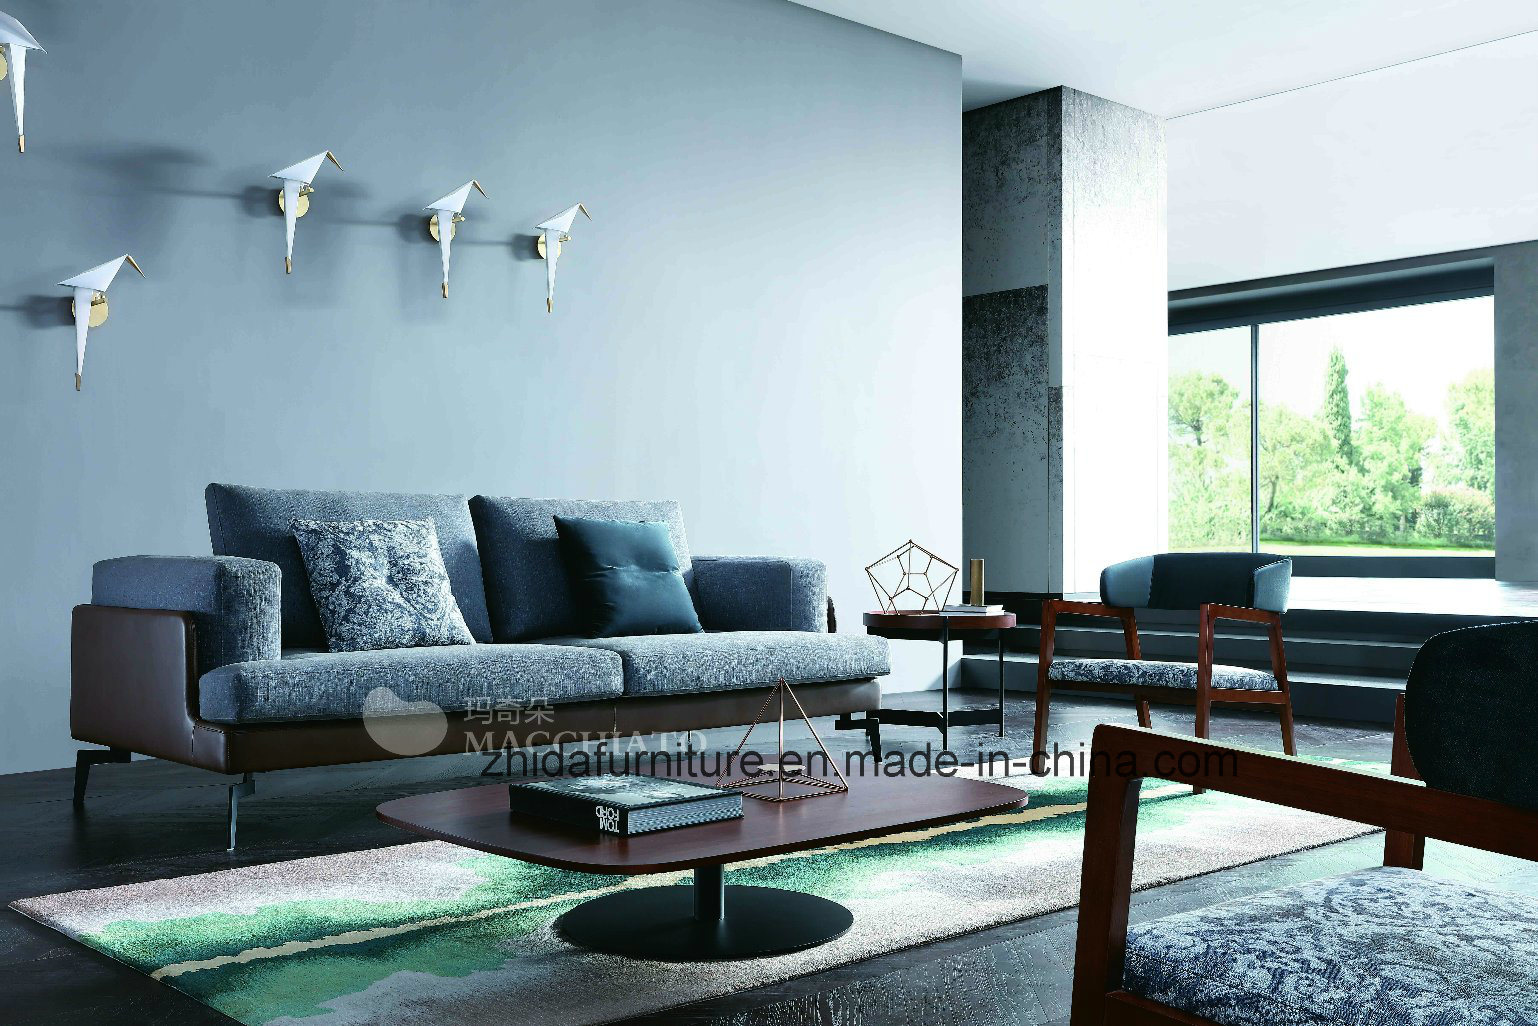 Groovy Hot Item Modern Design Living Room Genuine Leather Sofa Download Free Architecture Designs Intelgarnamadebymaigaardcom